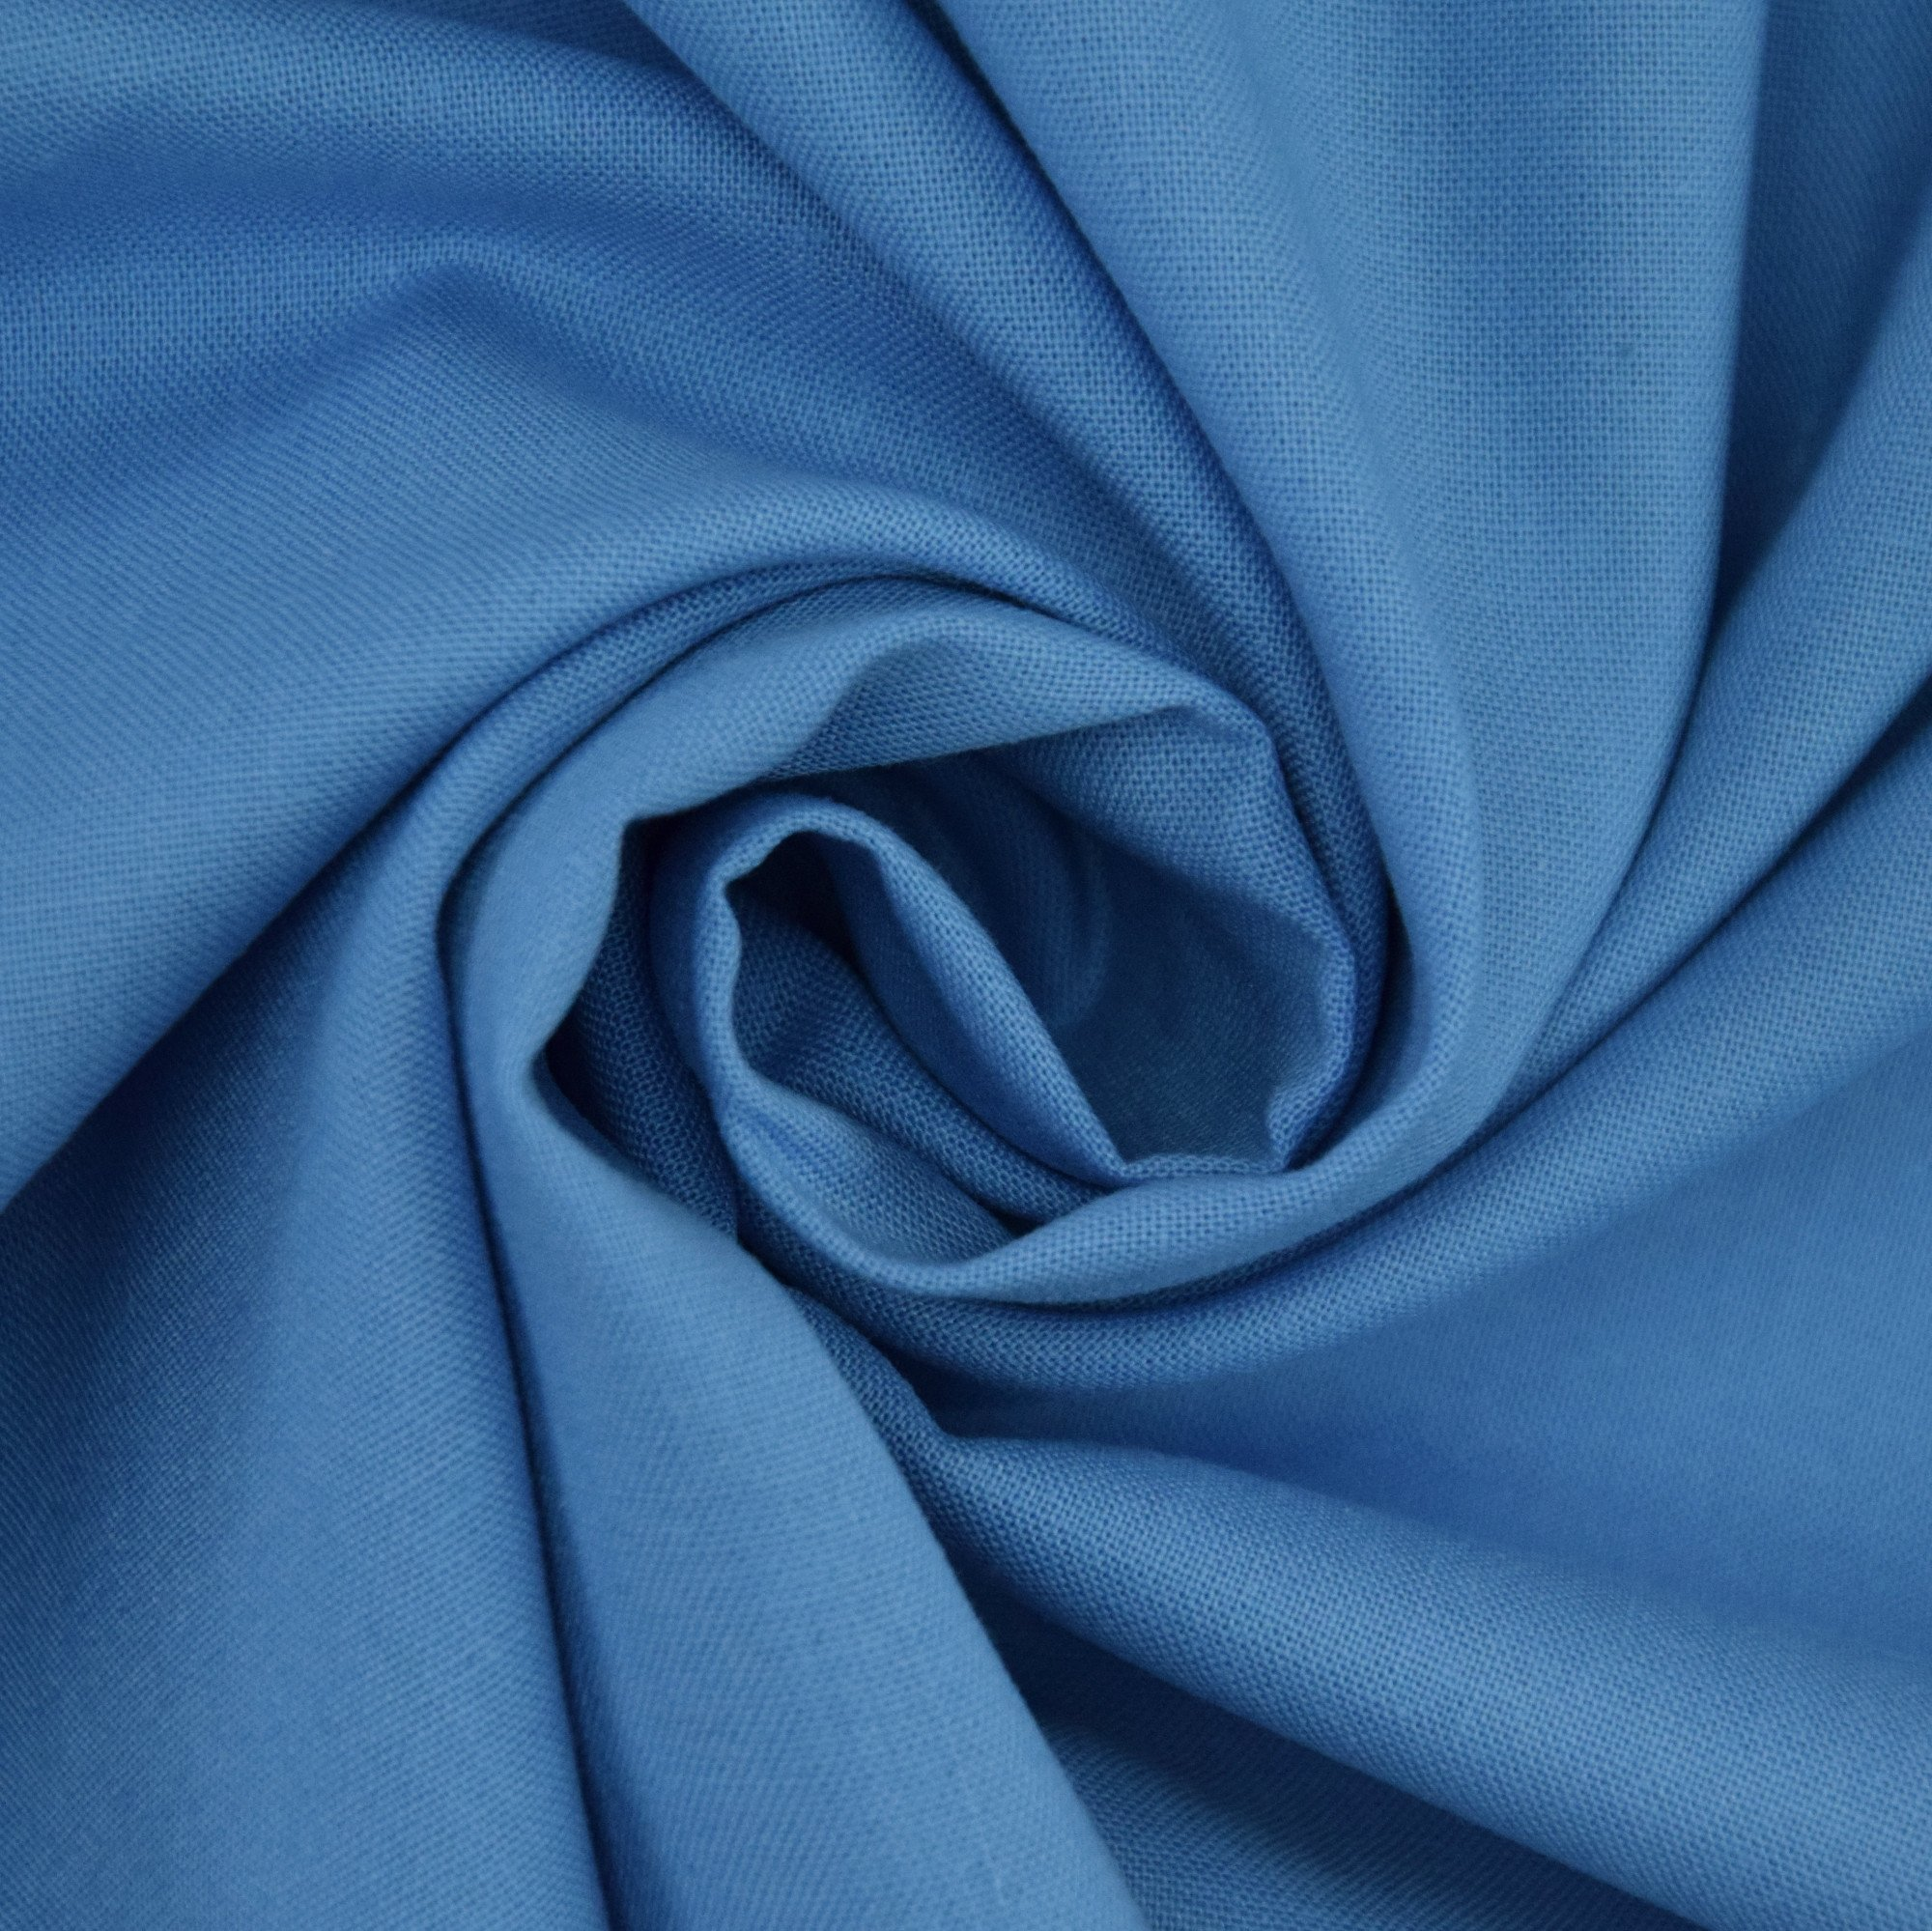 Cotton Cretonne skyblue